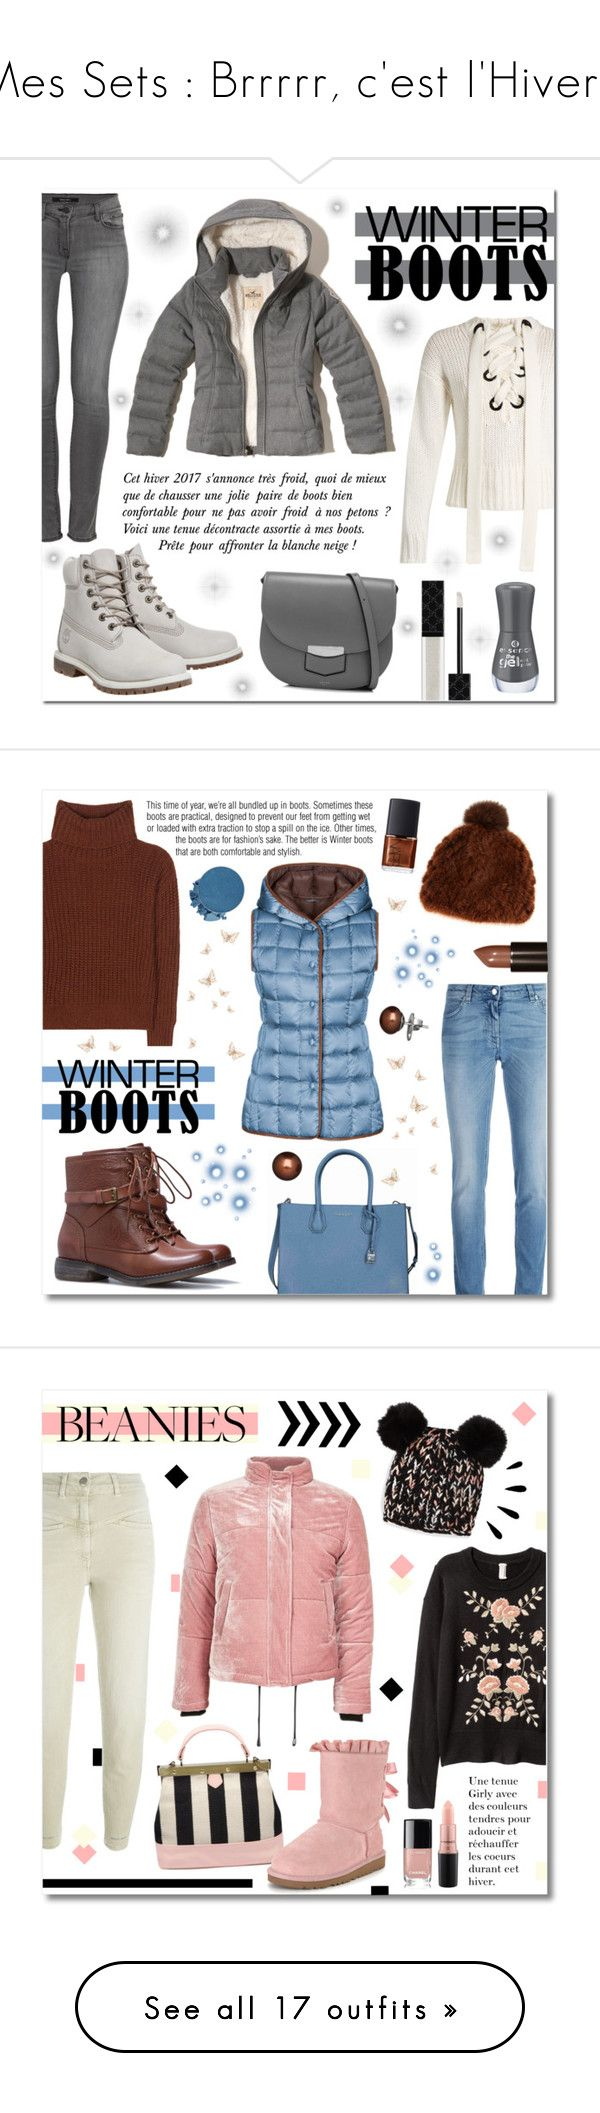 """Mes Sets : Brrrrr, c'est l'Hiver !"" by drinouchou ❤ liked on Polyvore featuring Timberland, J Brand, Hollister Co., Joseph, Gucci, winterboots, Honora, FAY, Givenchy and Loro Piana"